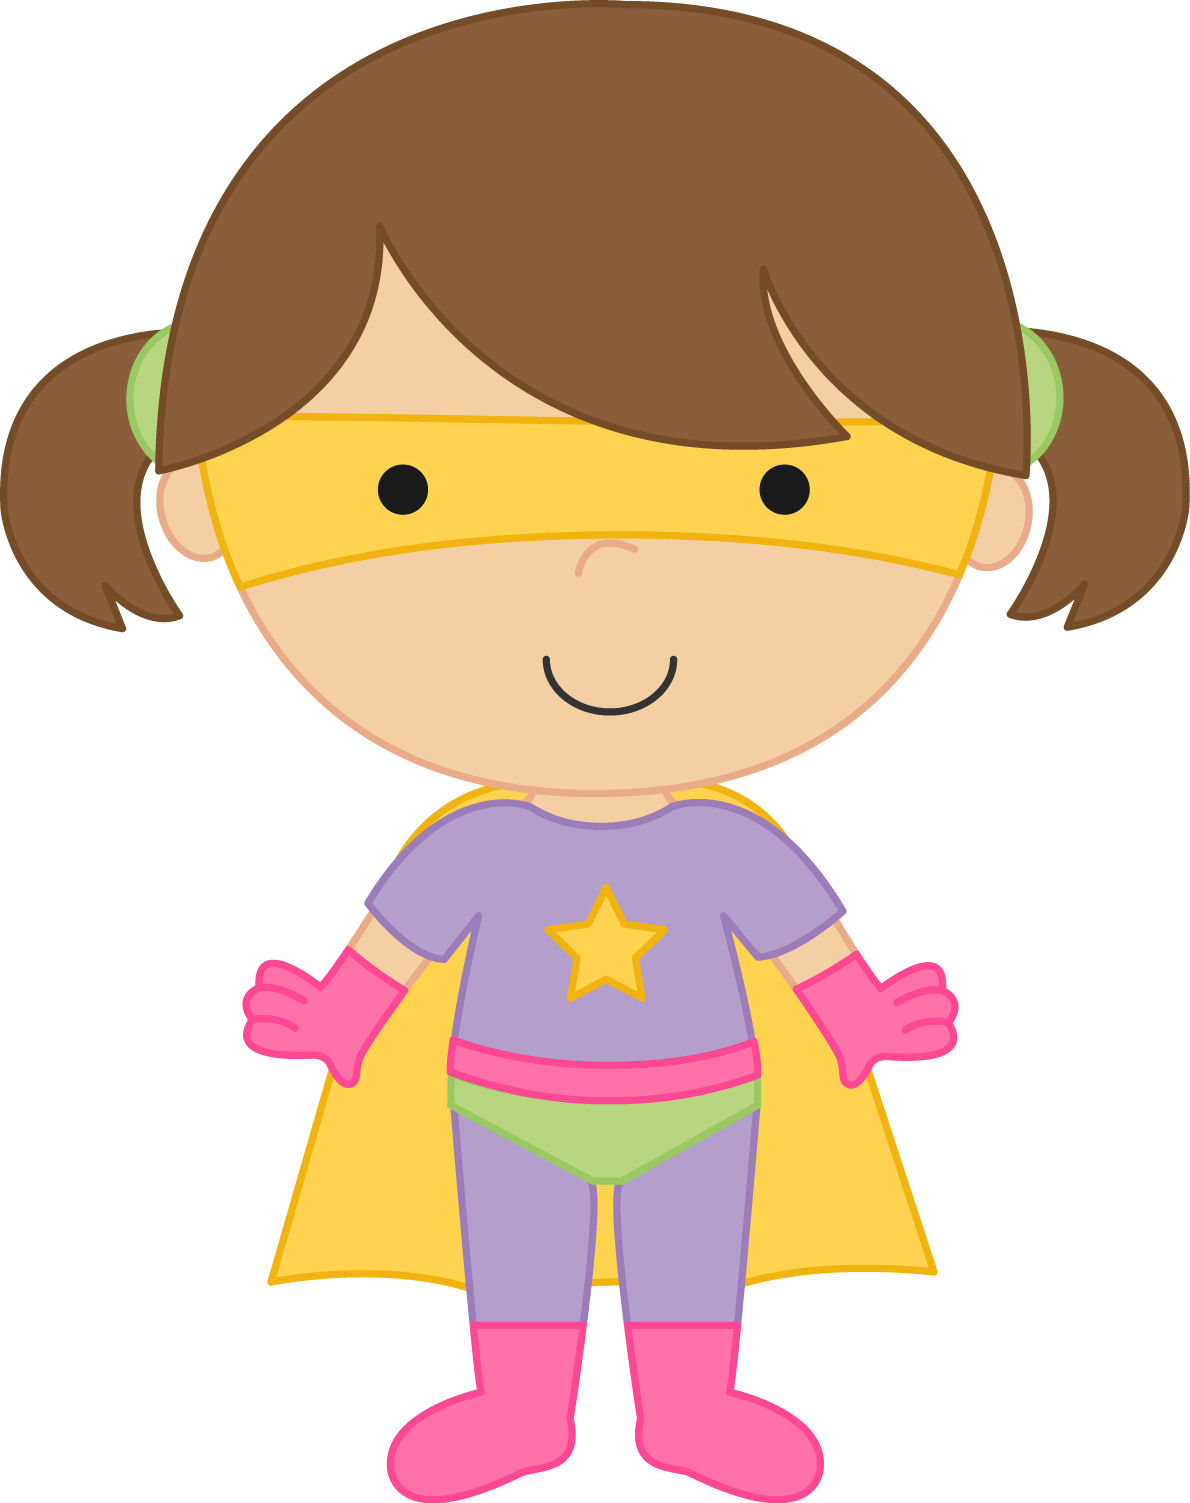 Super girl free collection. Supergirl clipart superkids clip art free stock